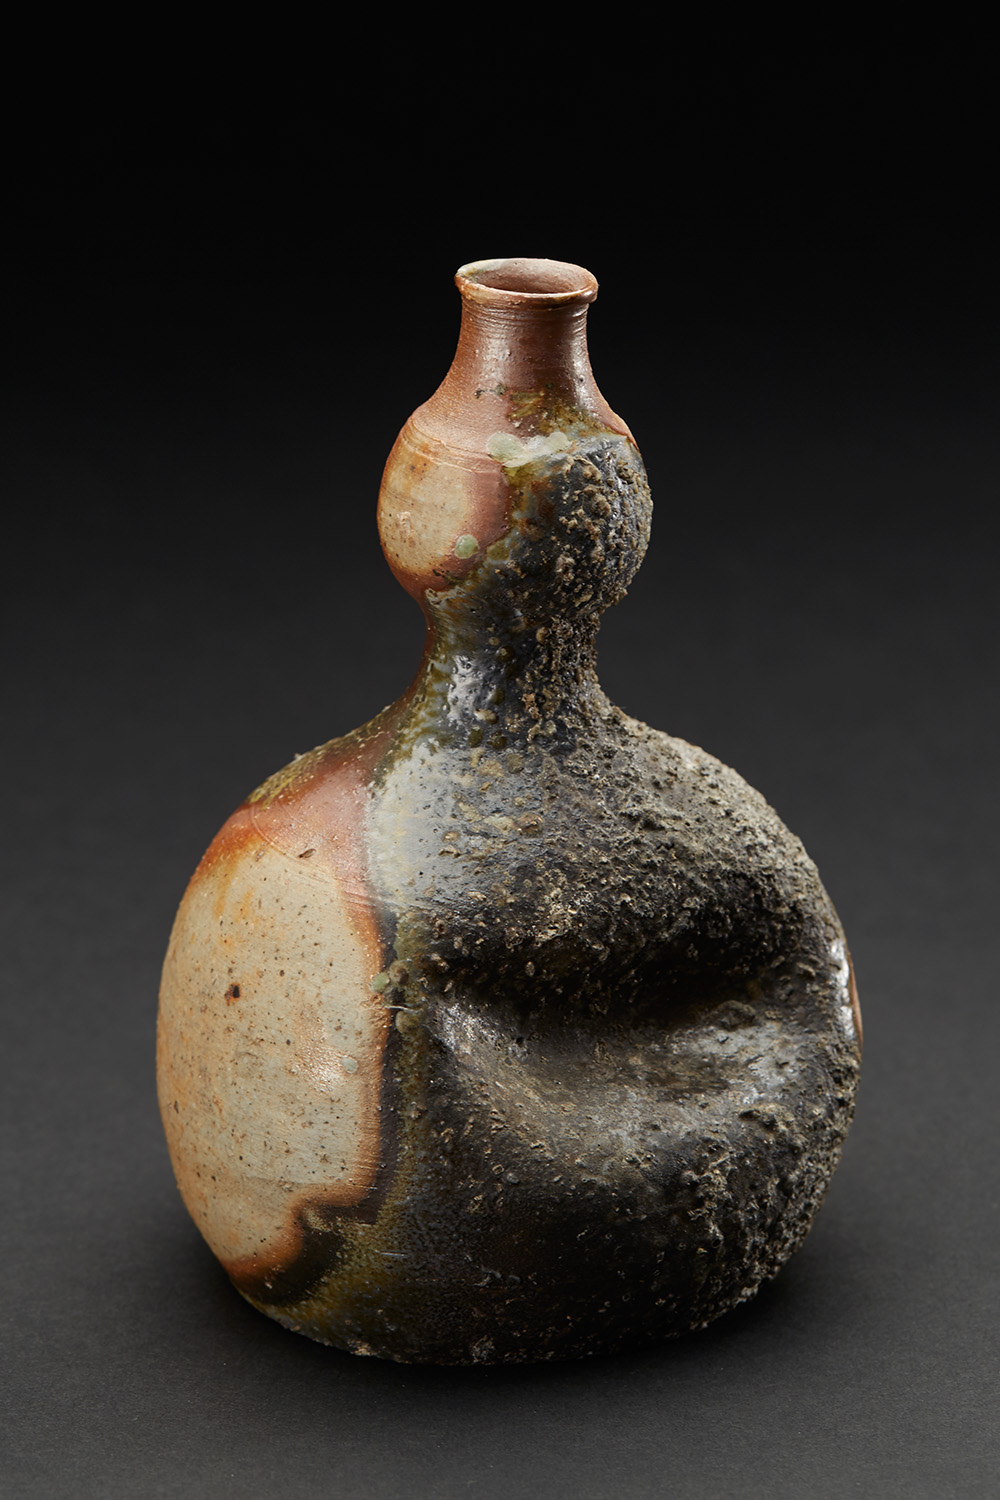 Japanese Ceramics    Bizen Indented Ash Covered Tokkuri  , 2017 Wood fired stoneware with melted ash 6 x 4 x 3.5 inches 15.2 x 10.2 x 8.9 cm JCer 44  $300